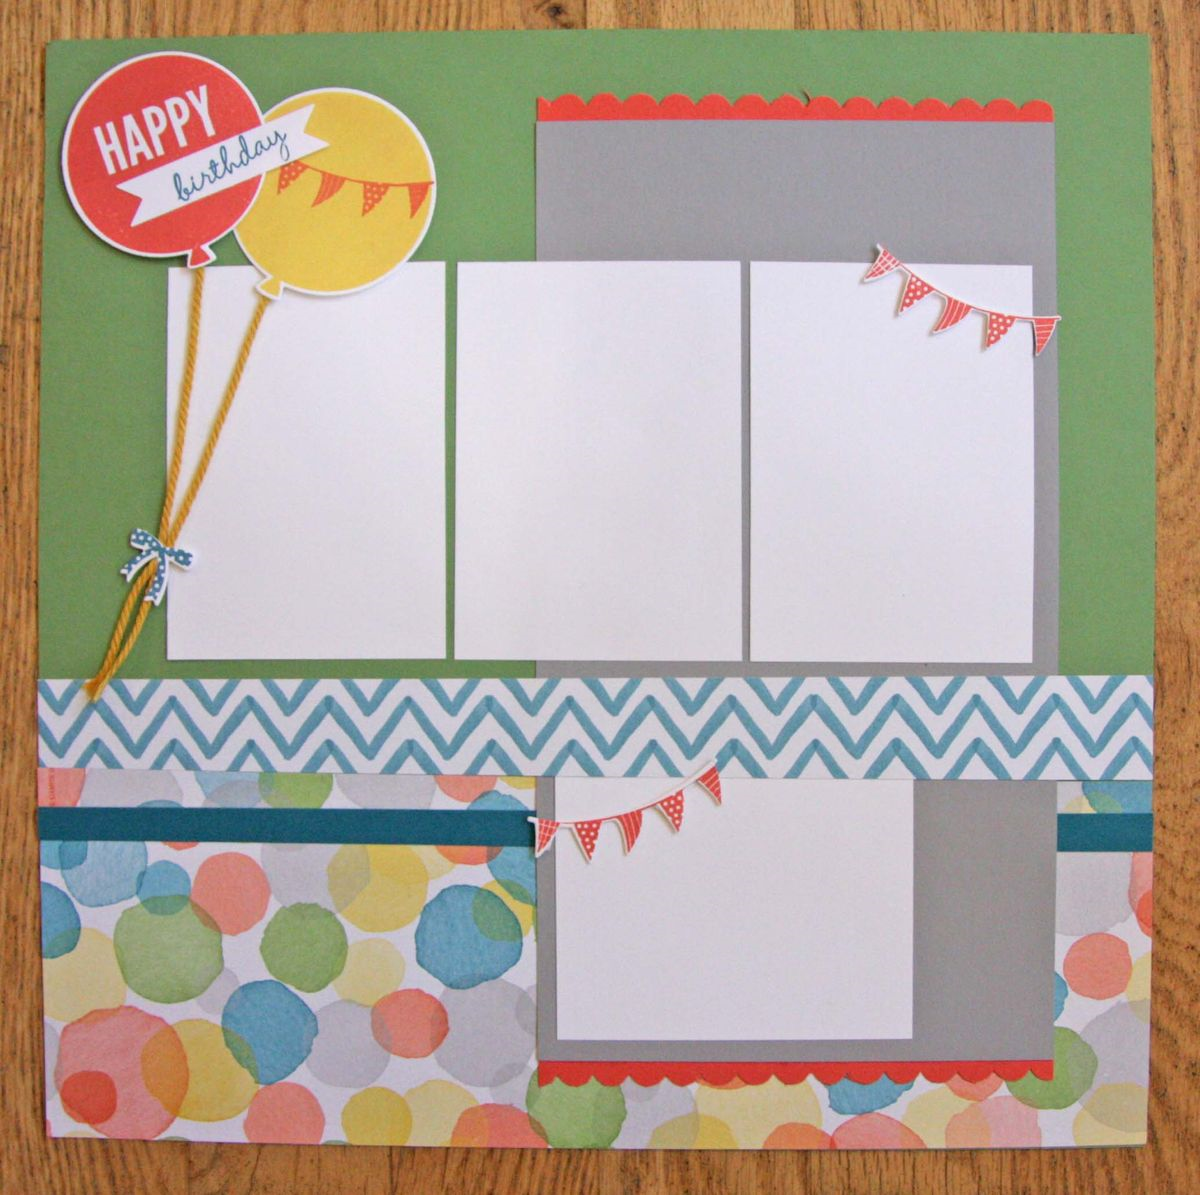 How to make scrapbook for birthday - Celebrate Today